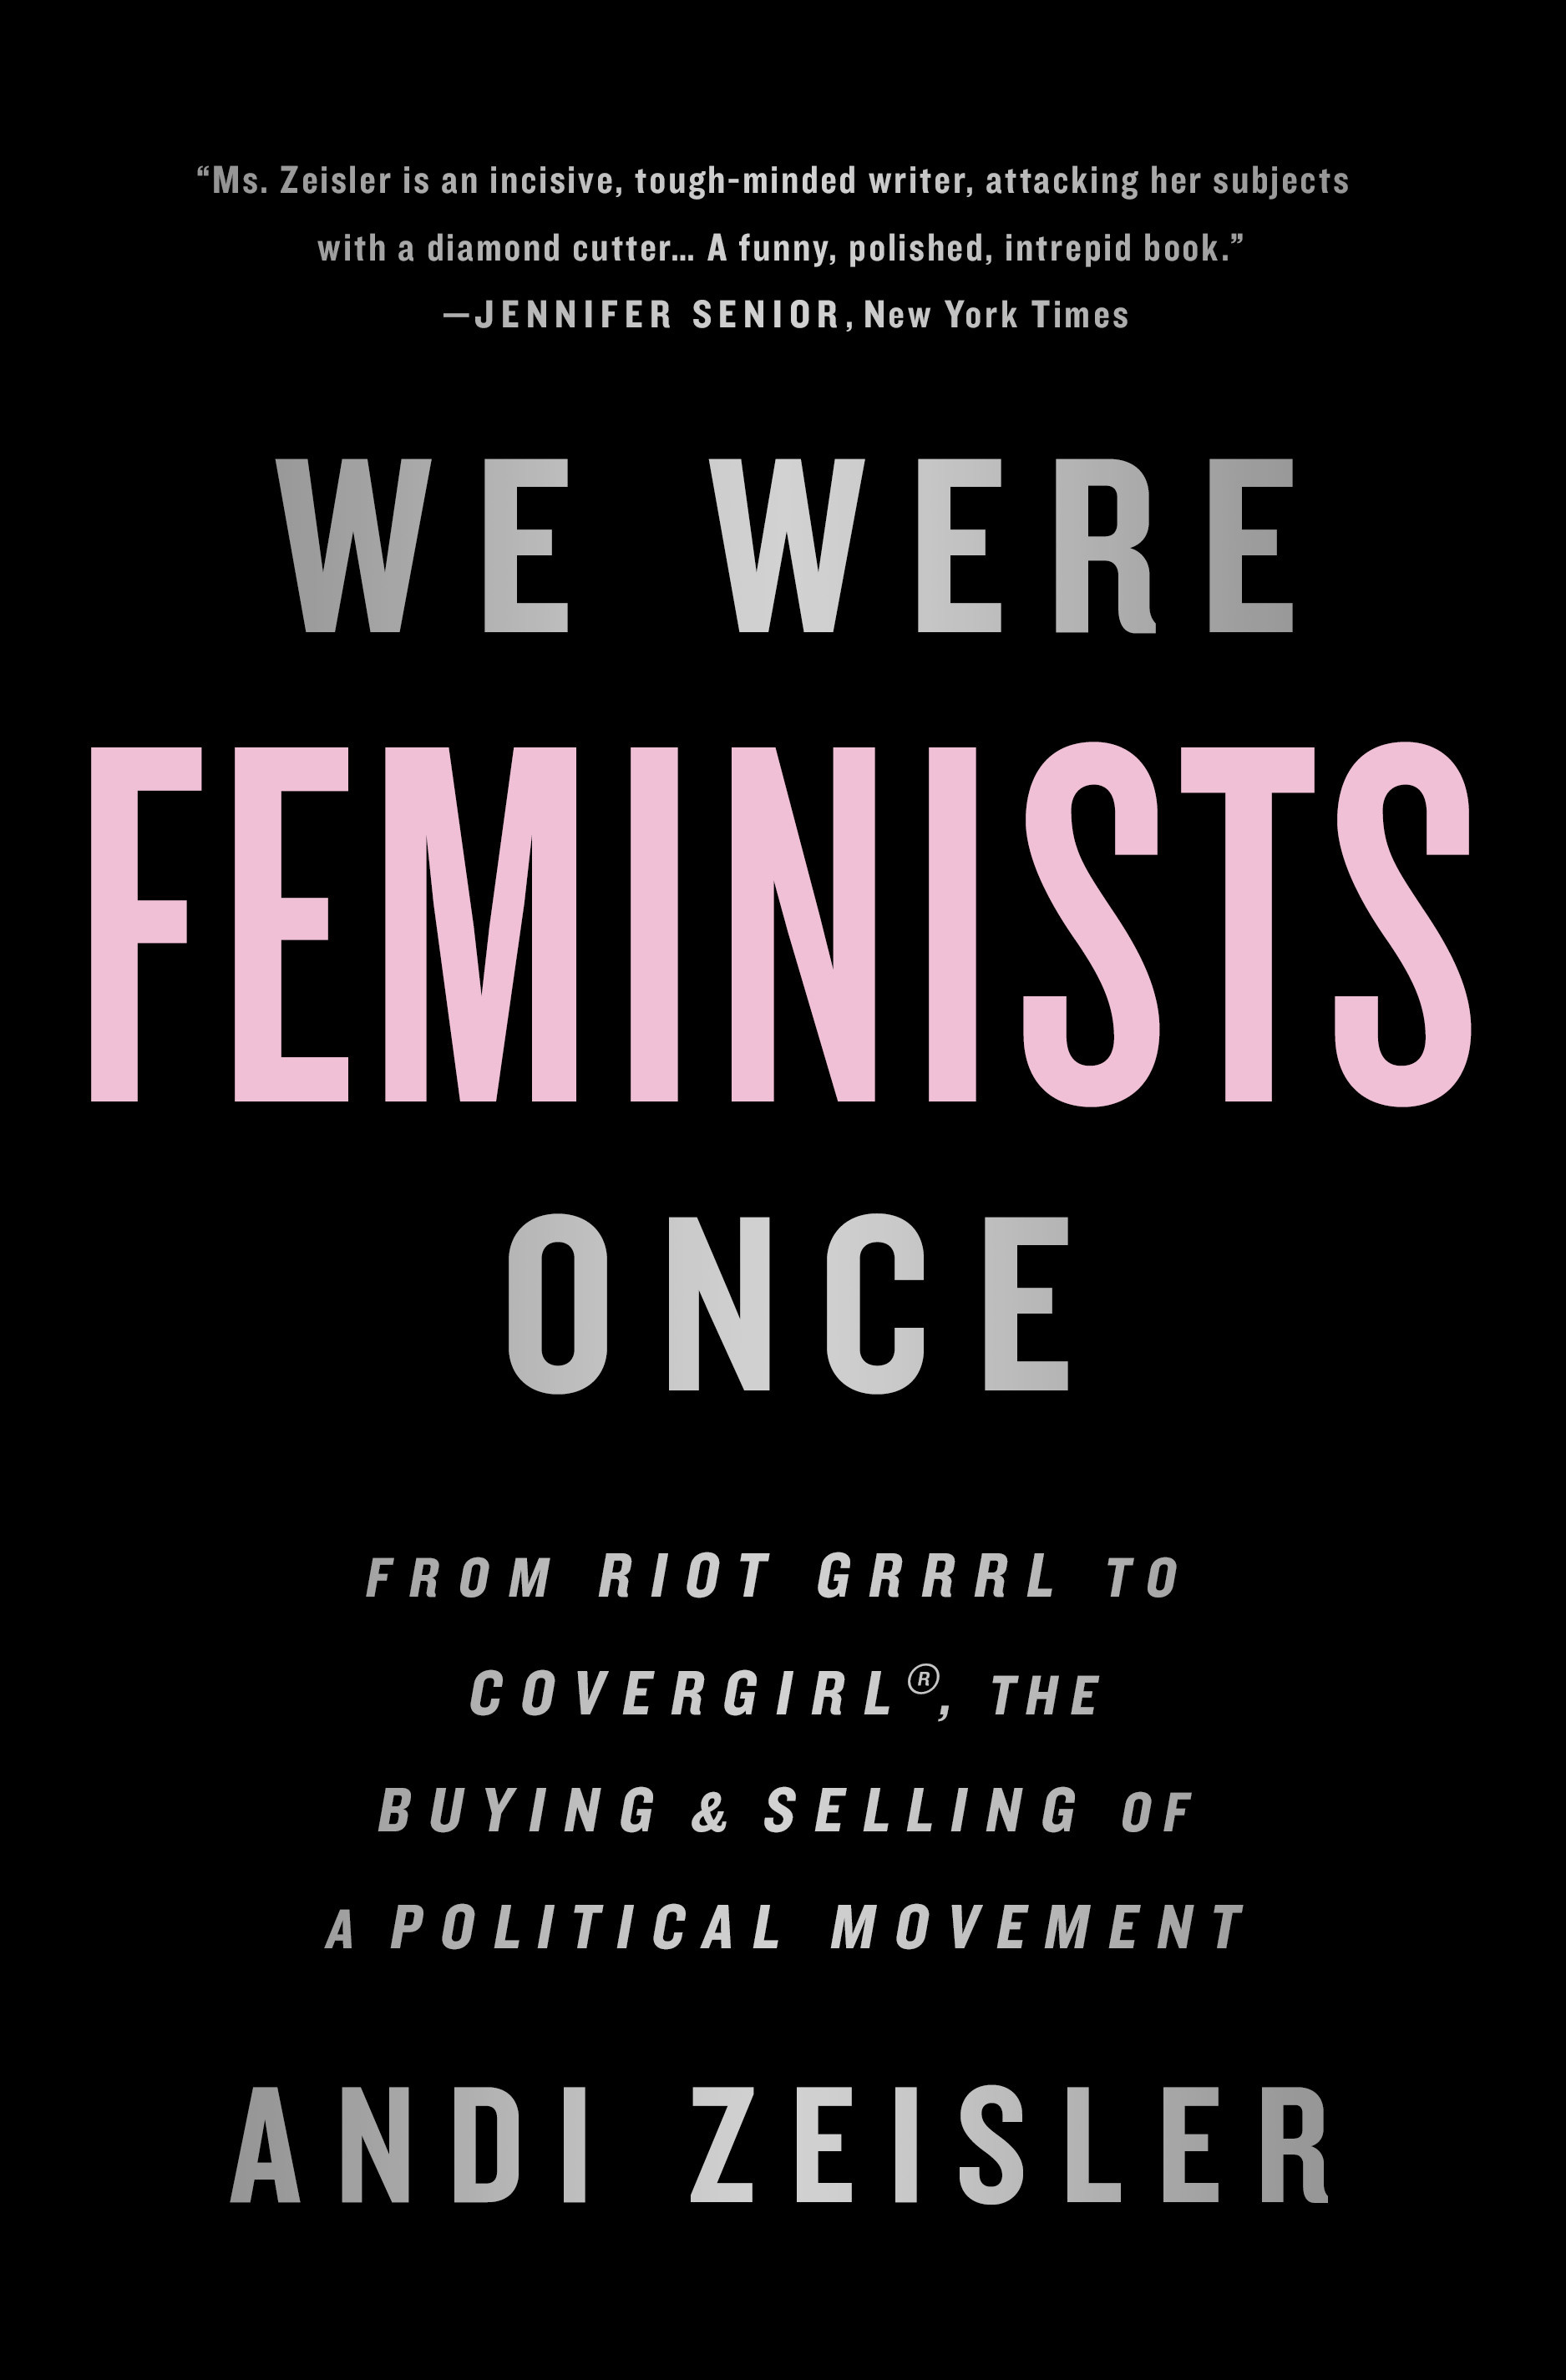 We Were Feminists Once by Andi Zeisler, ISBN: 9781610397735